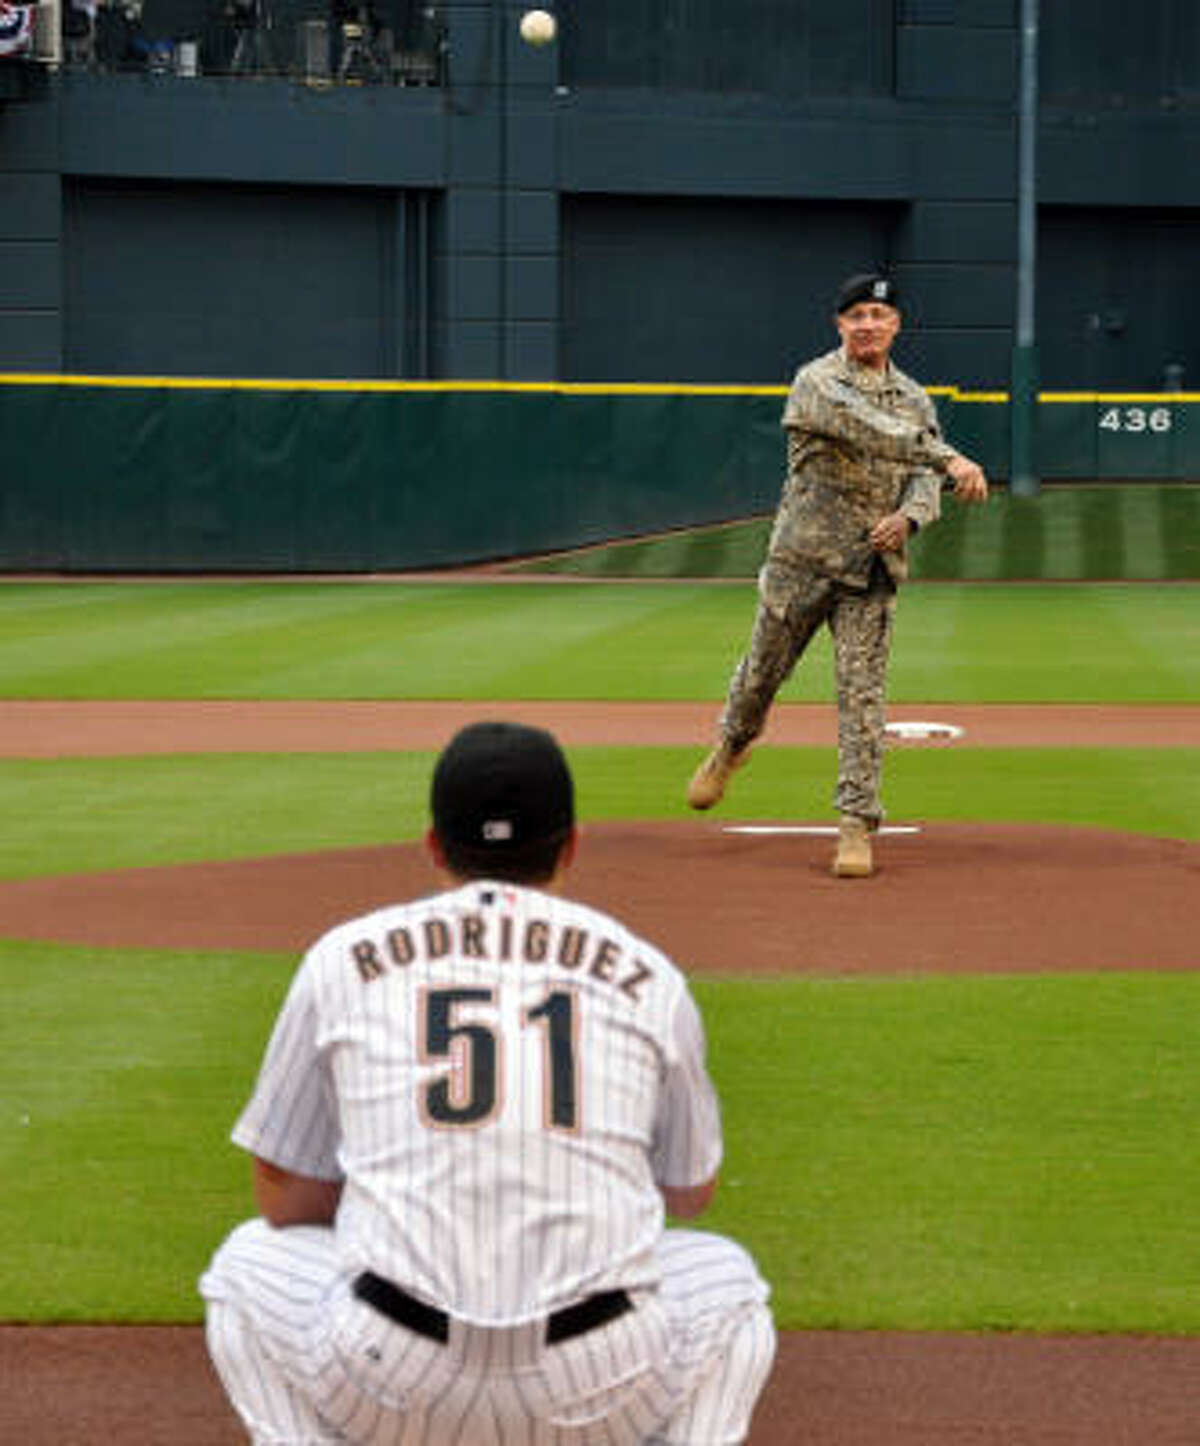 Date: May 22 Series: Astros vs. Rangers Game: 1 Major General Jeffrey Hammond throws out the first pitch Friday night to kick off Memorial Day weekend.